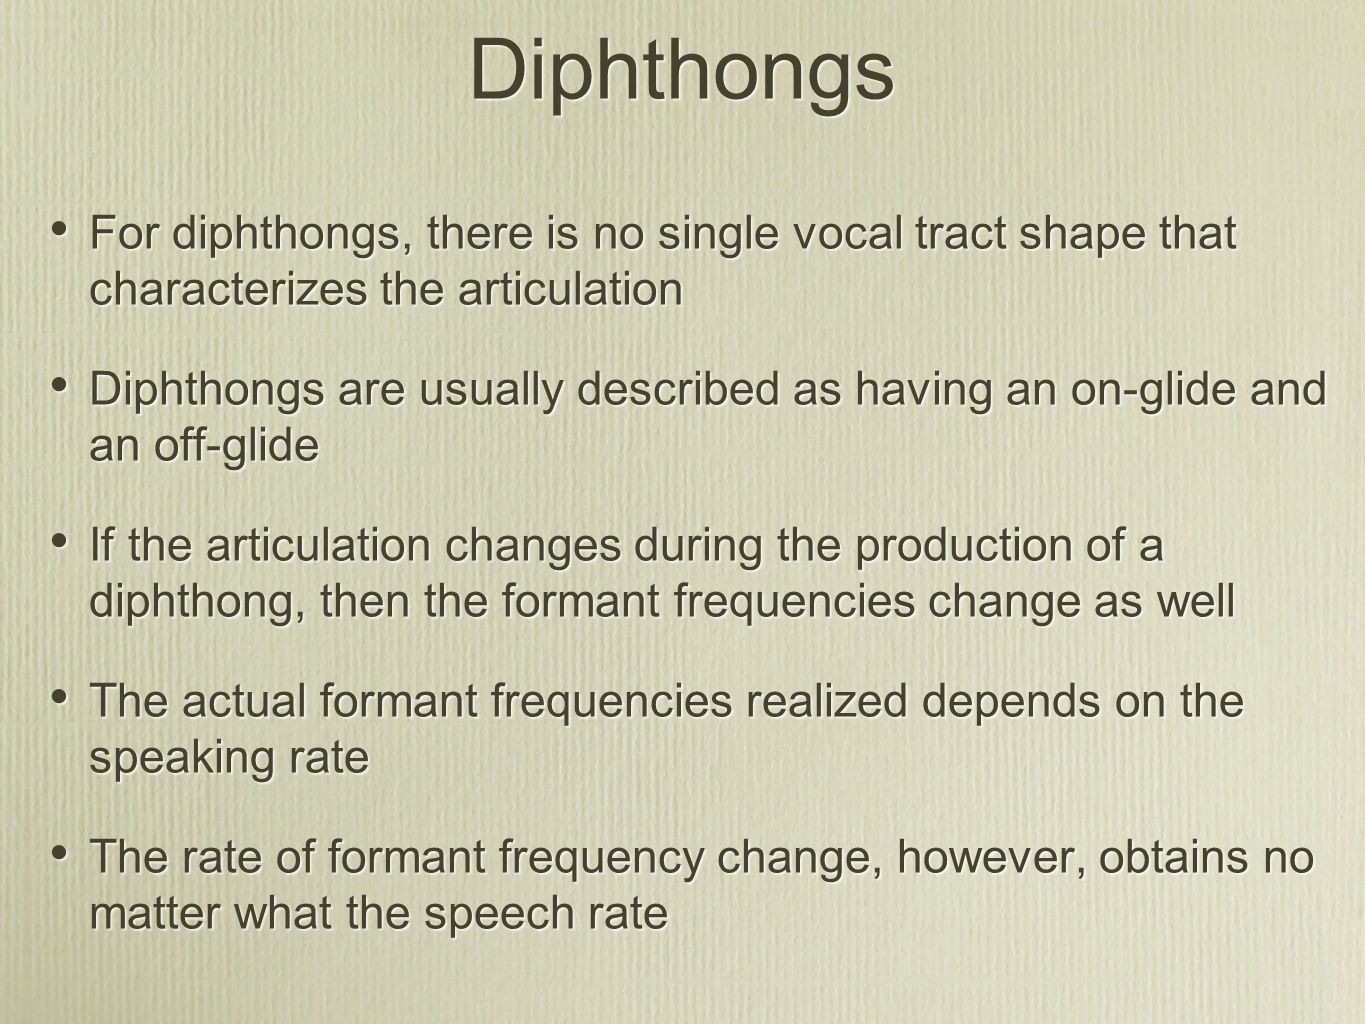 Diphthongs For diphthongs, there is no single vocal tract shape that characterizes the articulation Diphthongs are usually described as having an on-glide and an off-glide If the articulation changes during the production of a diphthong, then the formant frequencies change as well The actual formant frequencies realized depends on the speaking rate The rate of formant frequency change, however, obtains no matter what the speech rate For diphthongs, there is no single vocal tract shape that characterizes the articulation Diphthongs are usually described as having an on-glide and an off-glide If the articulation changes during the production of a diphthong, then the formant frequencies change as well The actual formant frequencies realized depends on the speaking rate The rate of formant frequency change, however, obtains no matter what the speech rate